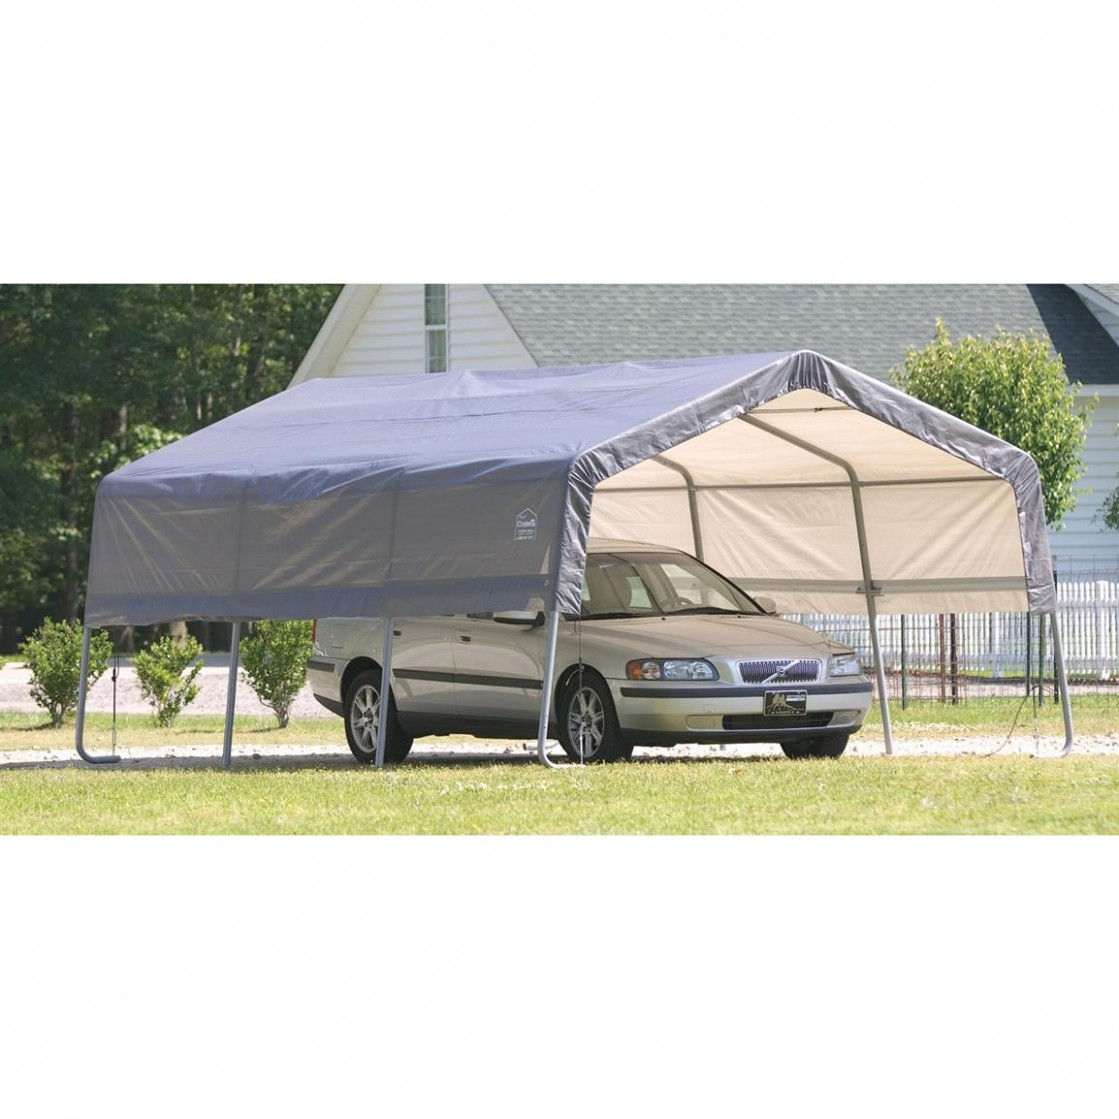 1517710393-shelterlogic-garage-car-newhairstylesformen14-com-car-cover-shelter.jpg